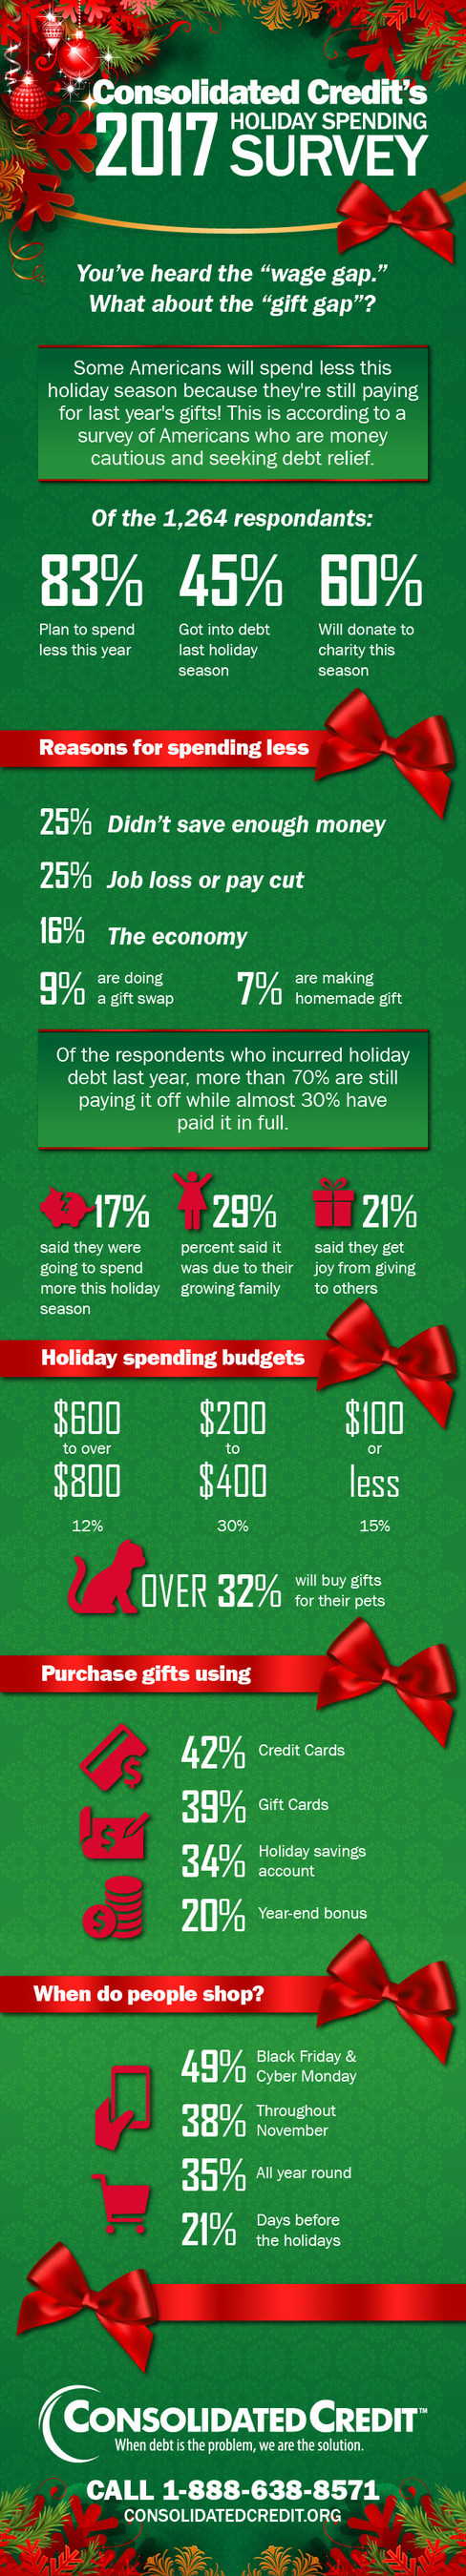 Each year, Consolidated Credit asks people who have reached out to us for help to tell us about their holiday spending plans. In 2017, we received 1,264 responses. Here are the results…